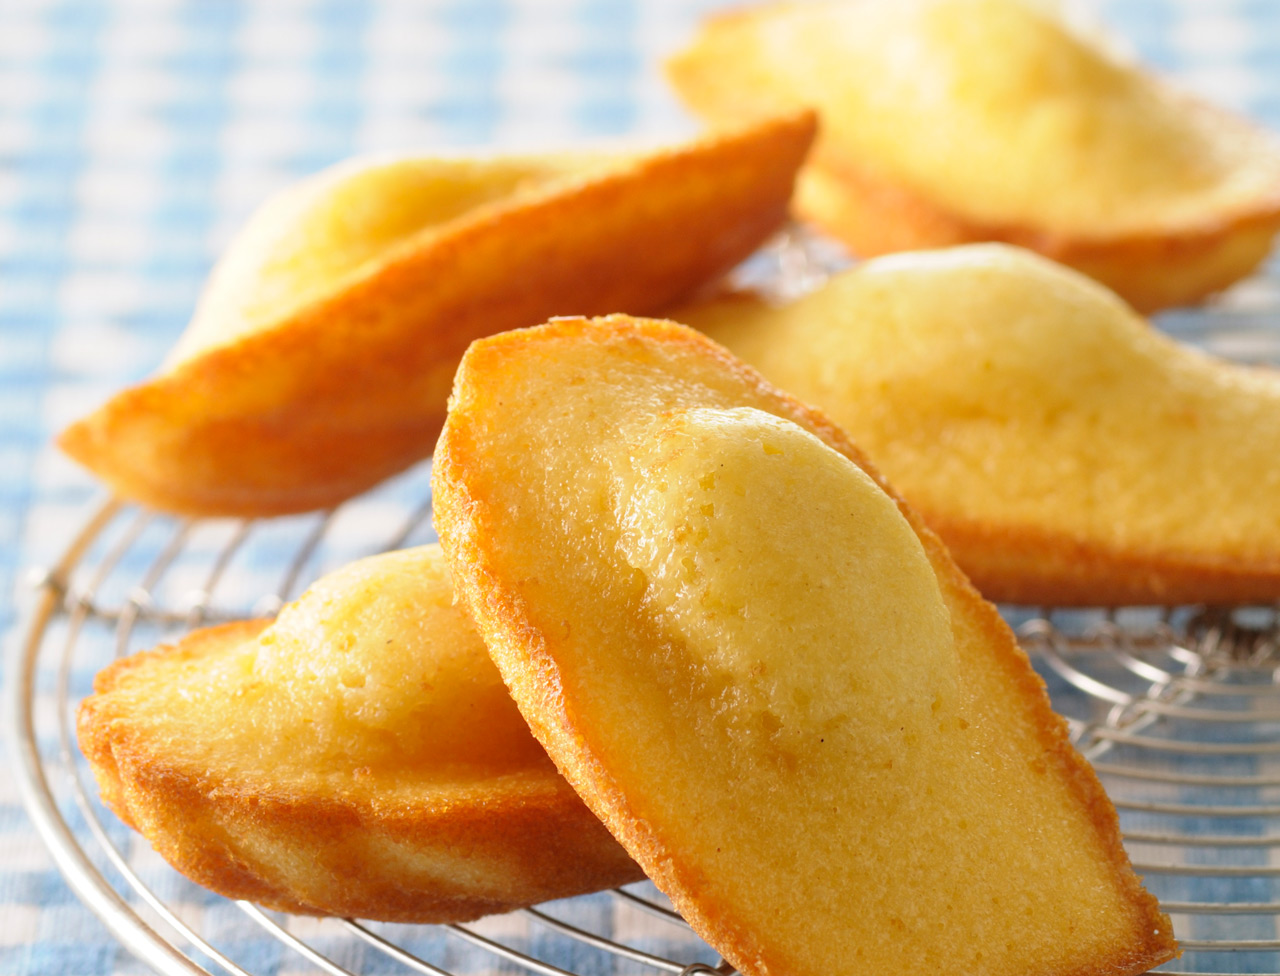 Amazing Madeleine Pictures & Backgrounds